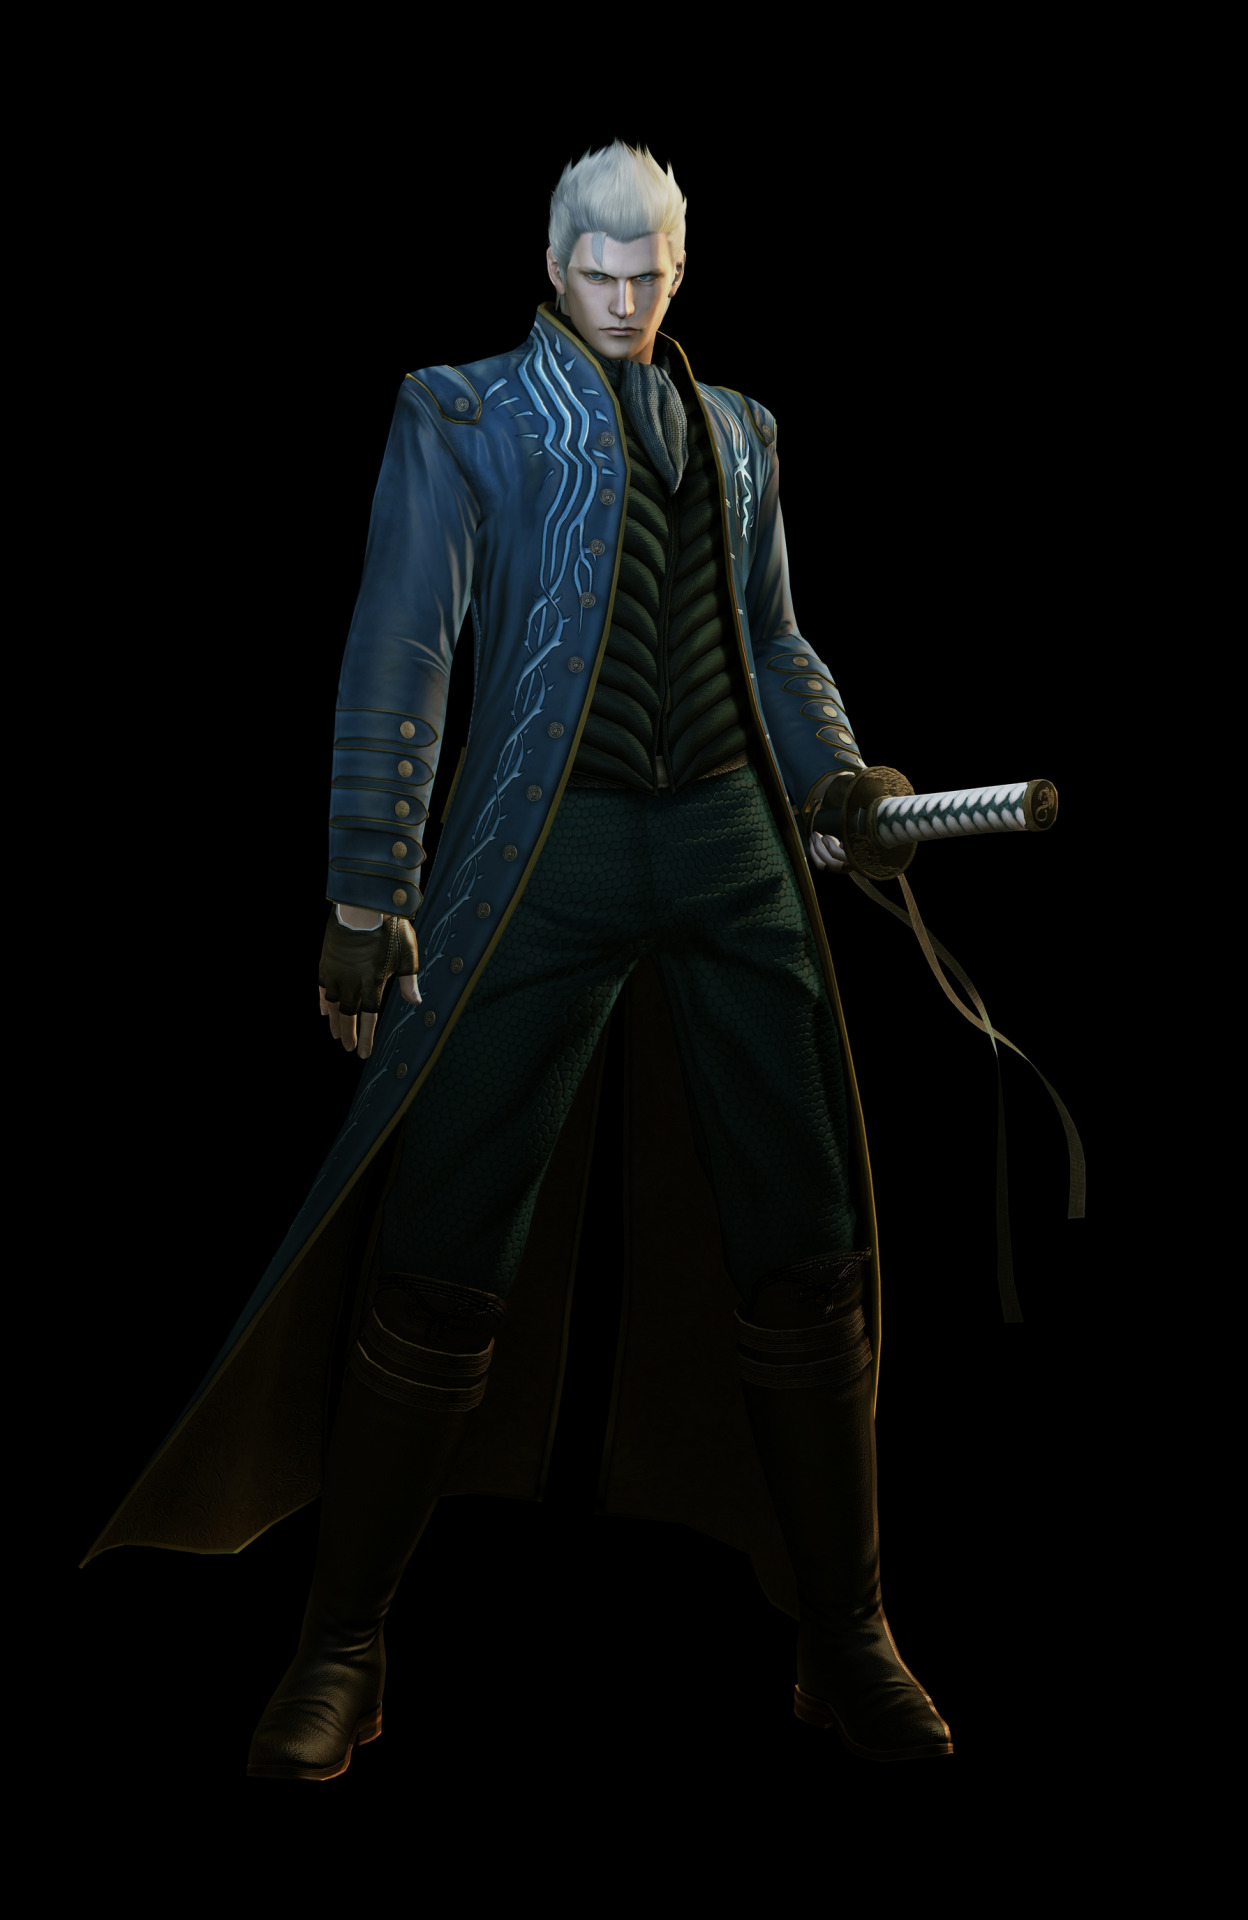 Devil May Cry 4 Images Devil May Cry 4 Special Edition Vergil Hd